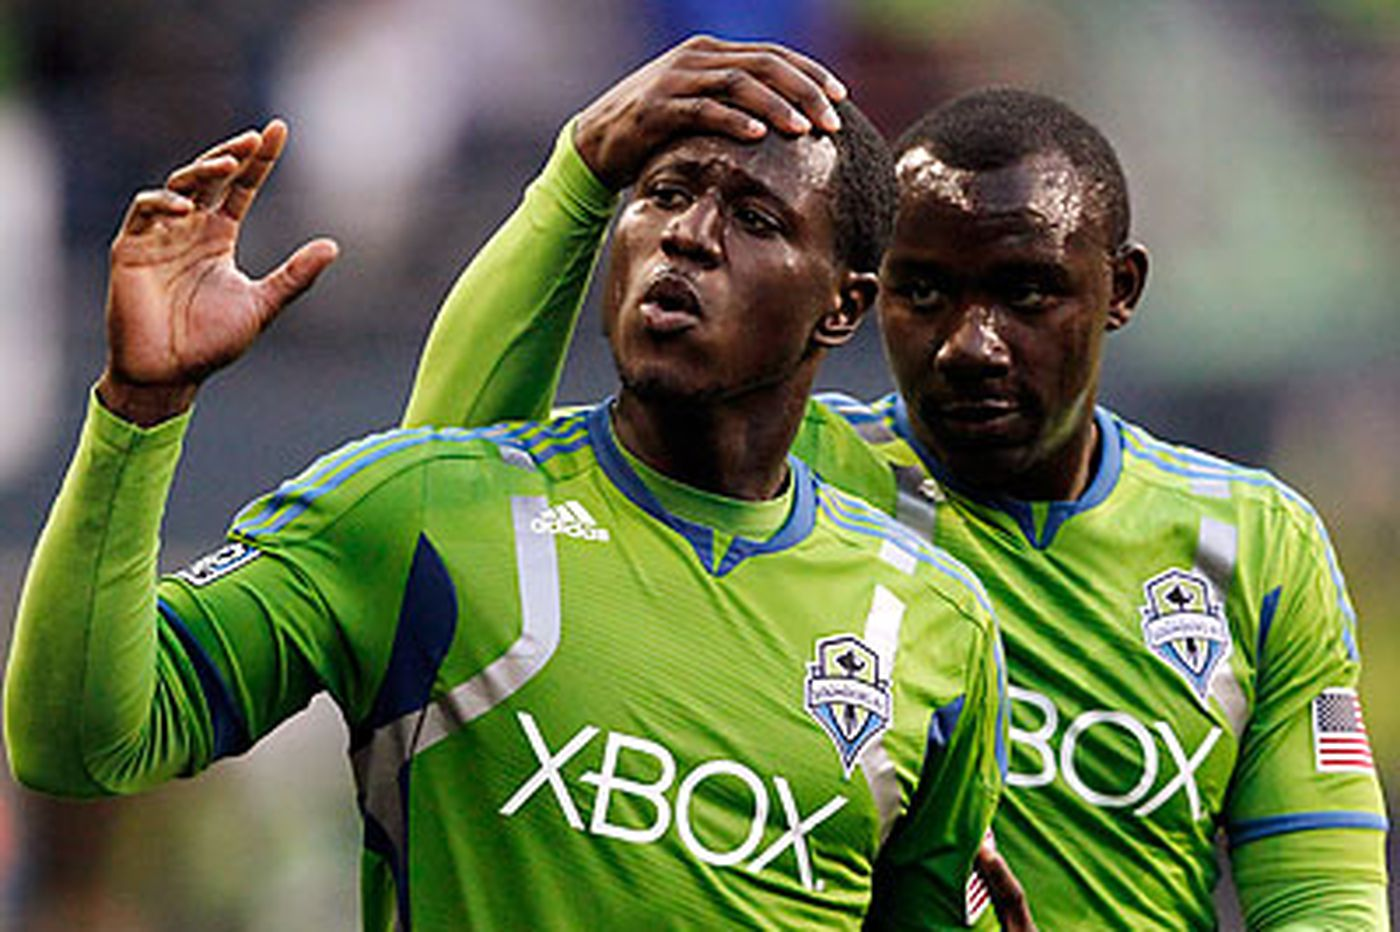 Union look to get back on winning track against Seattle Sounders